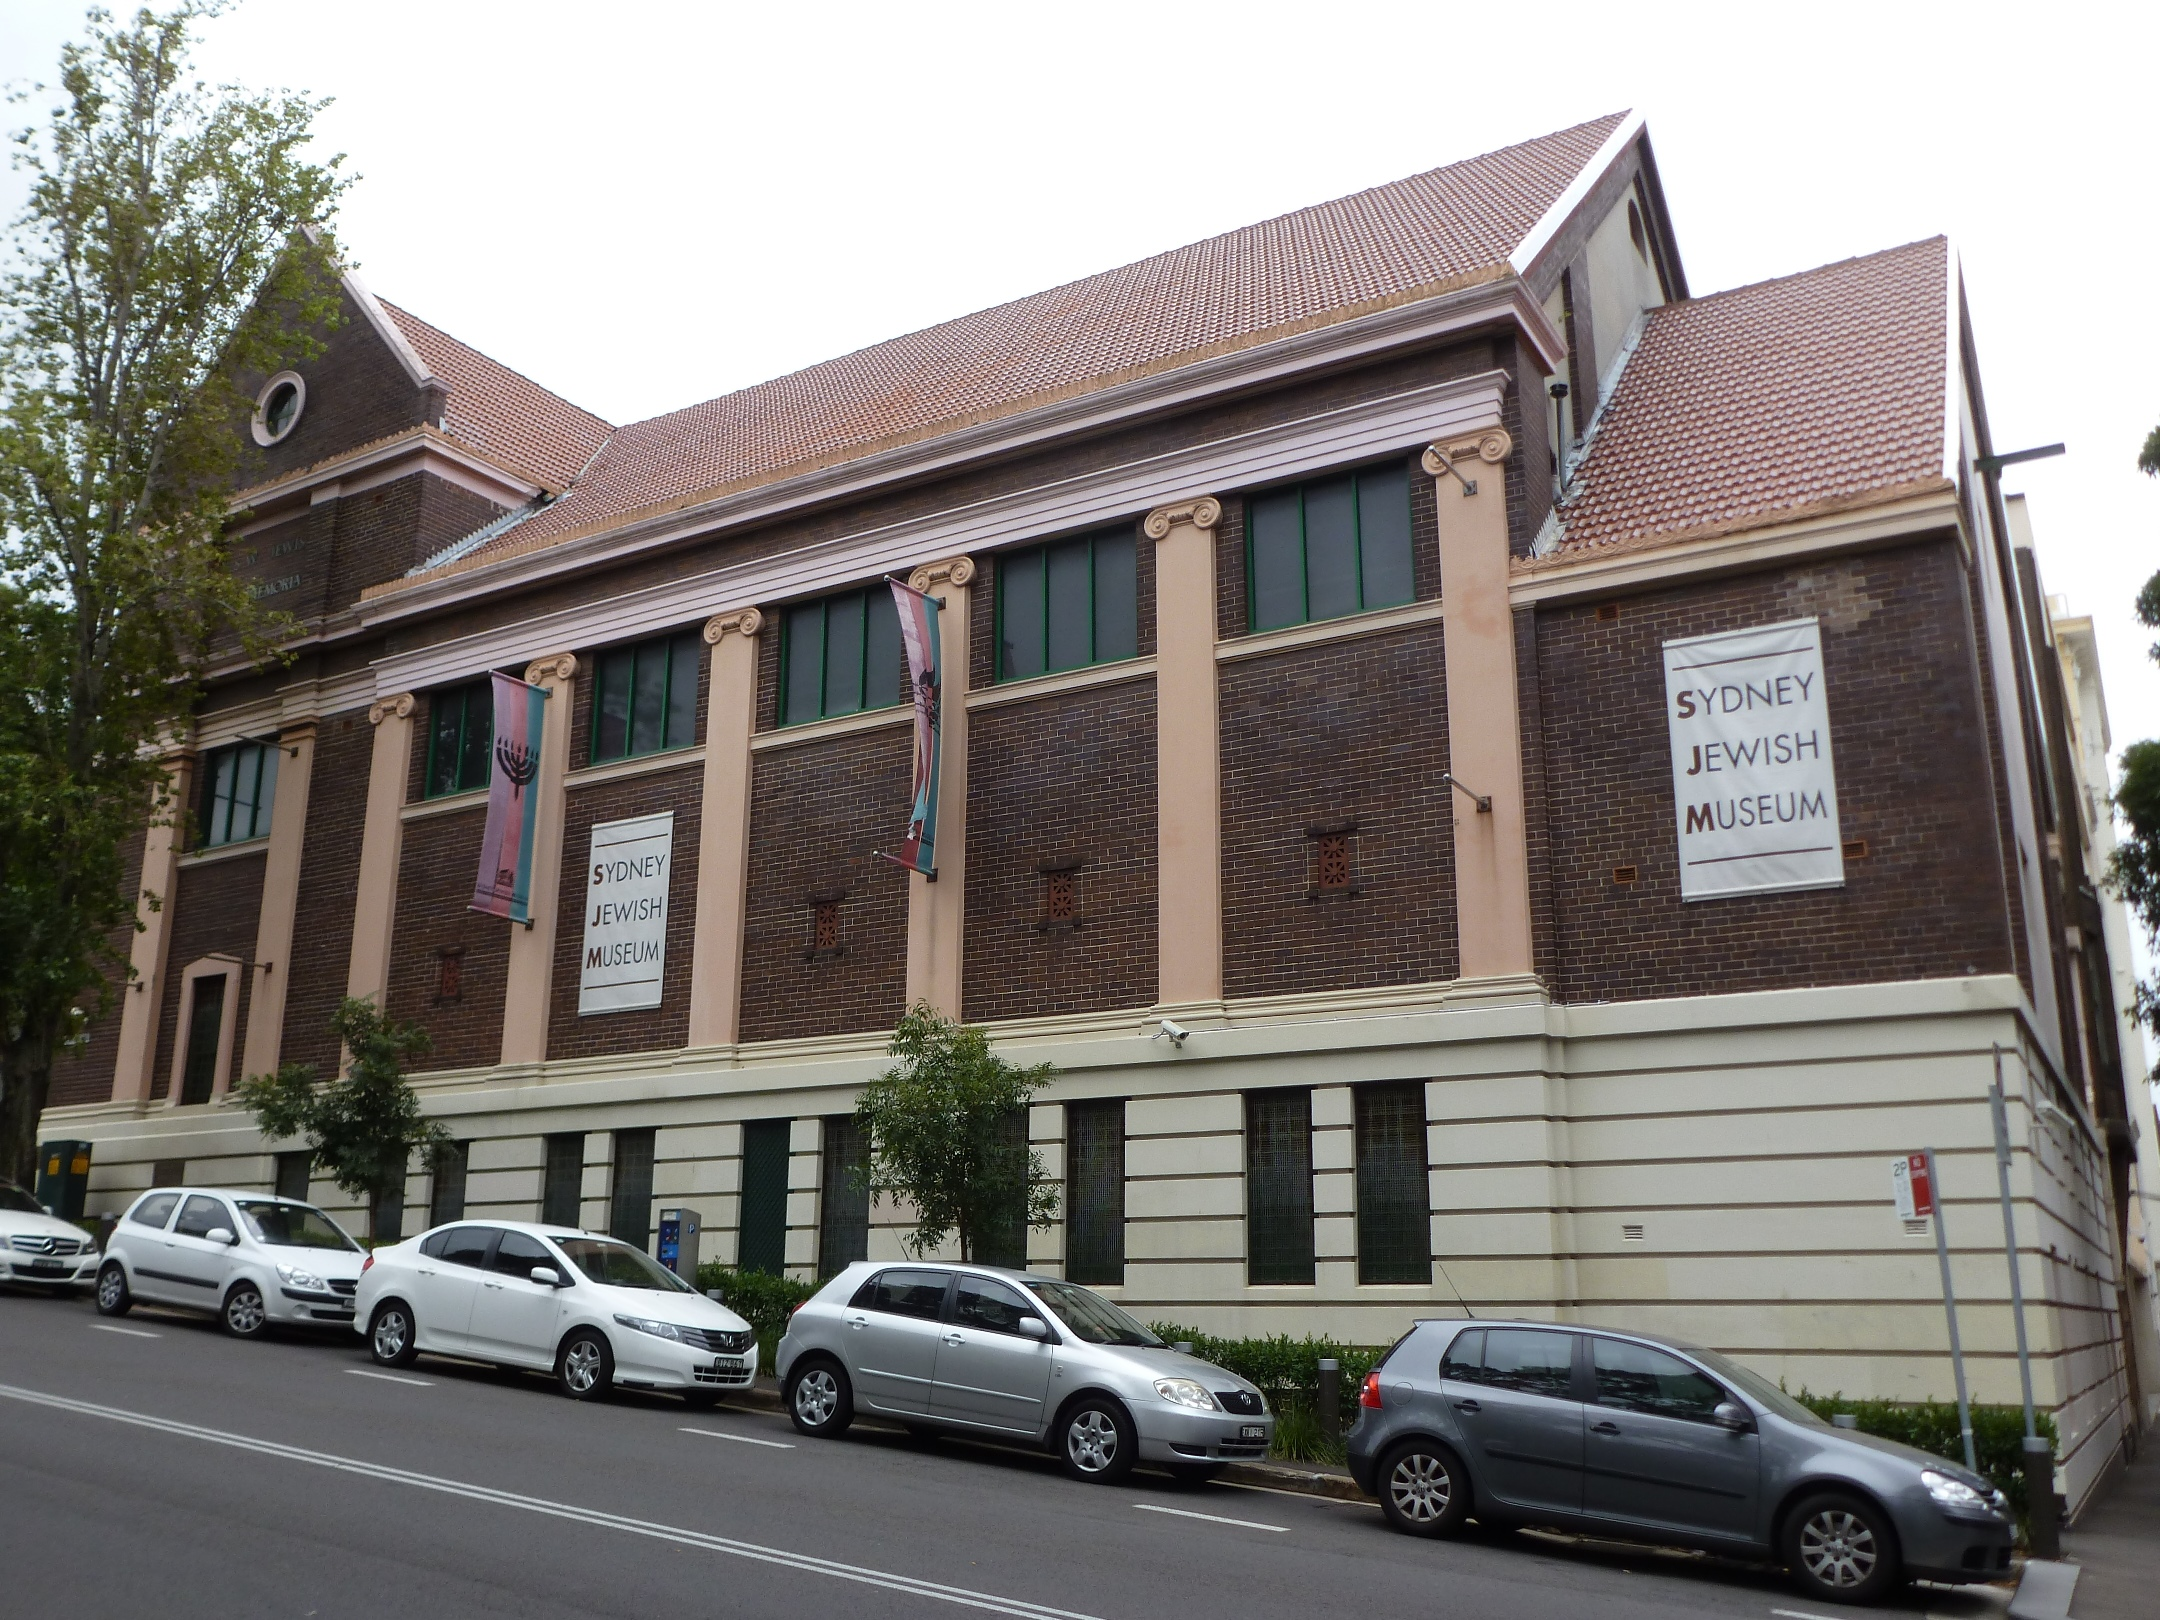 This museum is here we learn about Jewish people here in Australia.